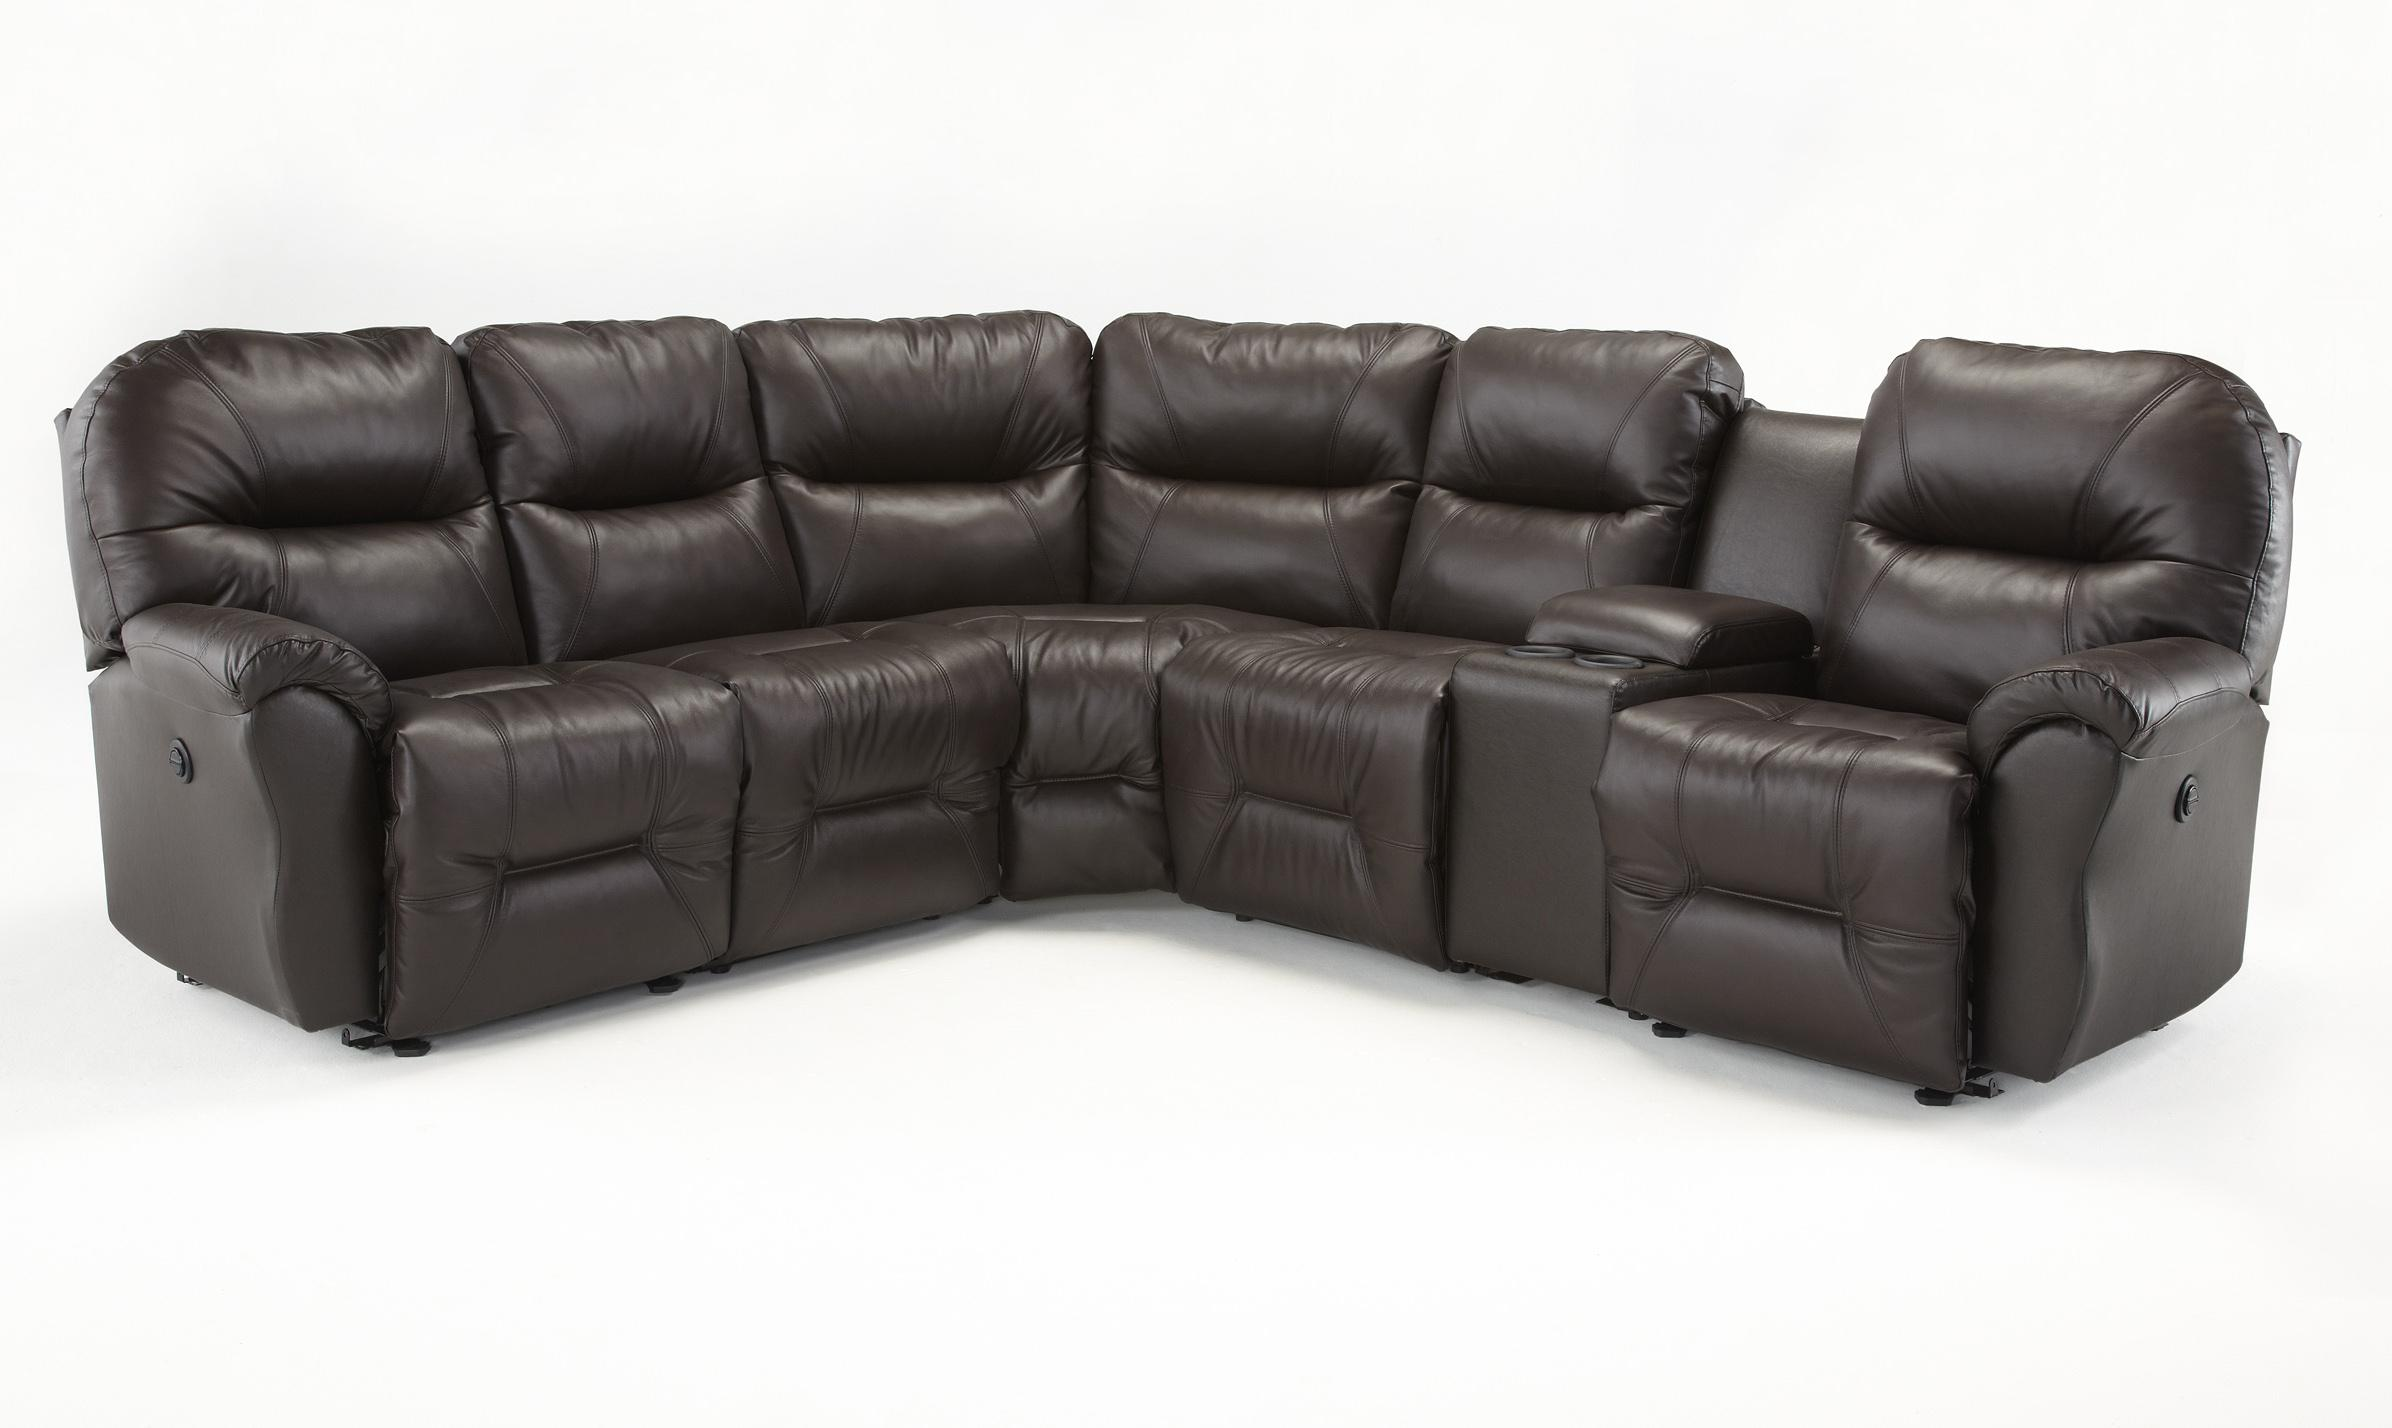 bodie 6 pc power reclining sectional sofa